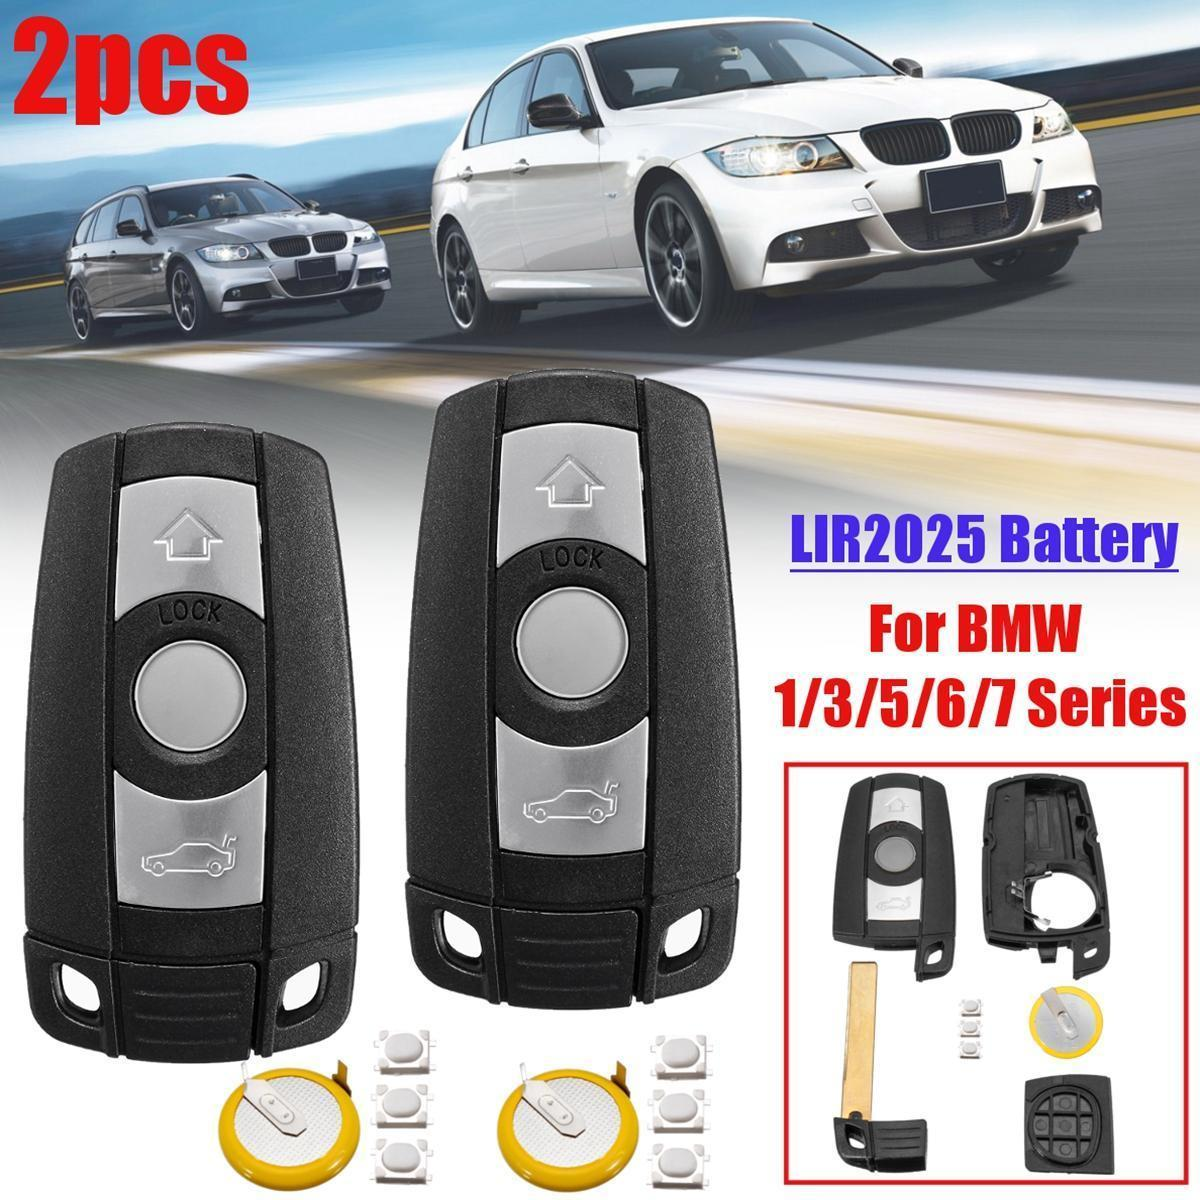 2pcs 3 Buttons Remote Key Fob With Lir2025 For Bmw 1 3 5 6 7 Series E90 E92